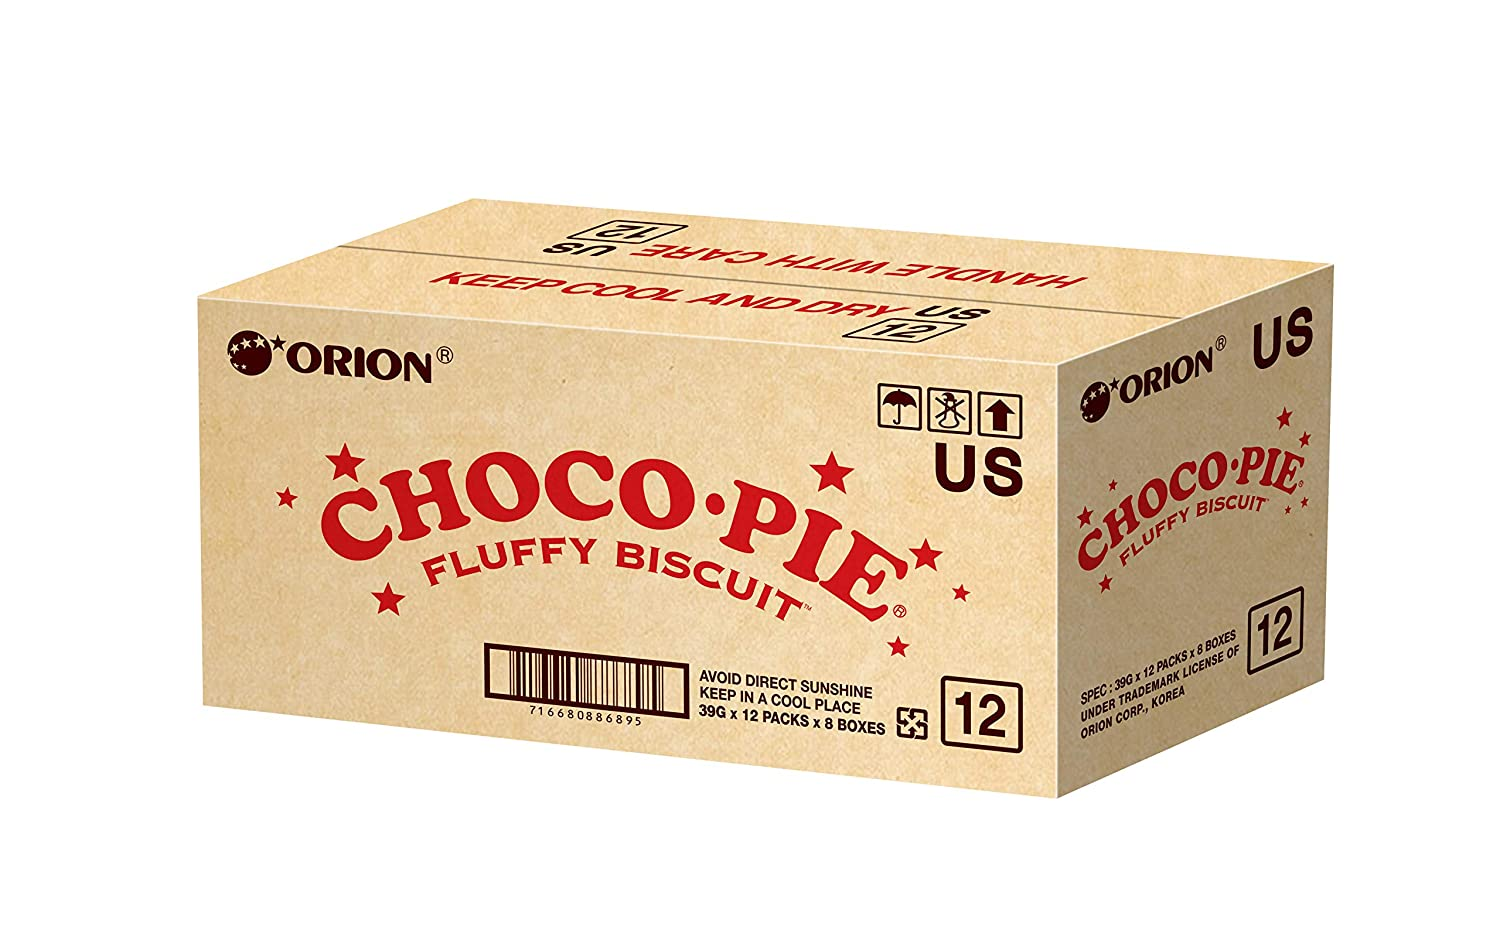 Orion CHOCO SEAL limited product PIE with Under blast sales Marshmallow Filling pack - 96